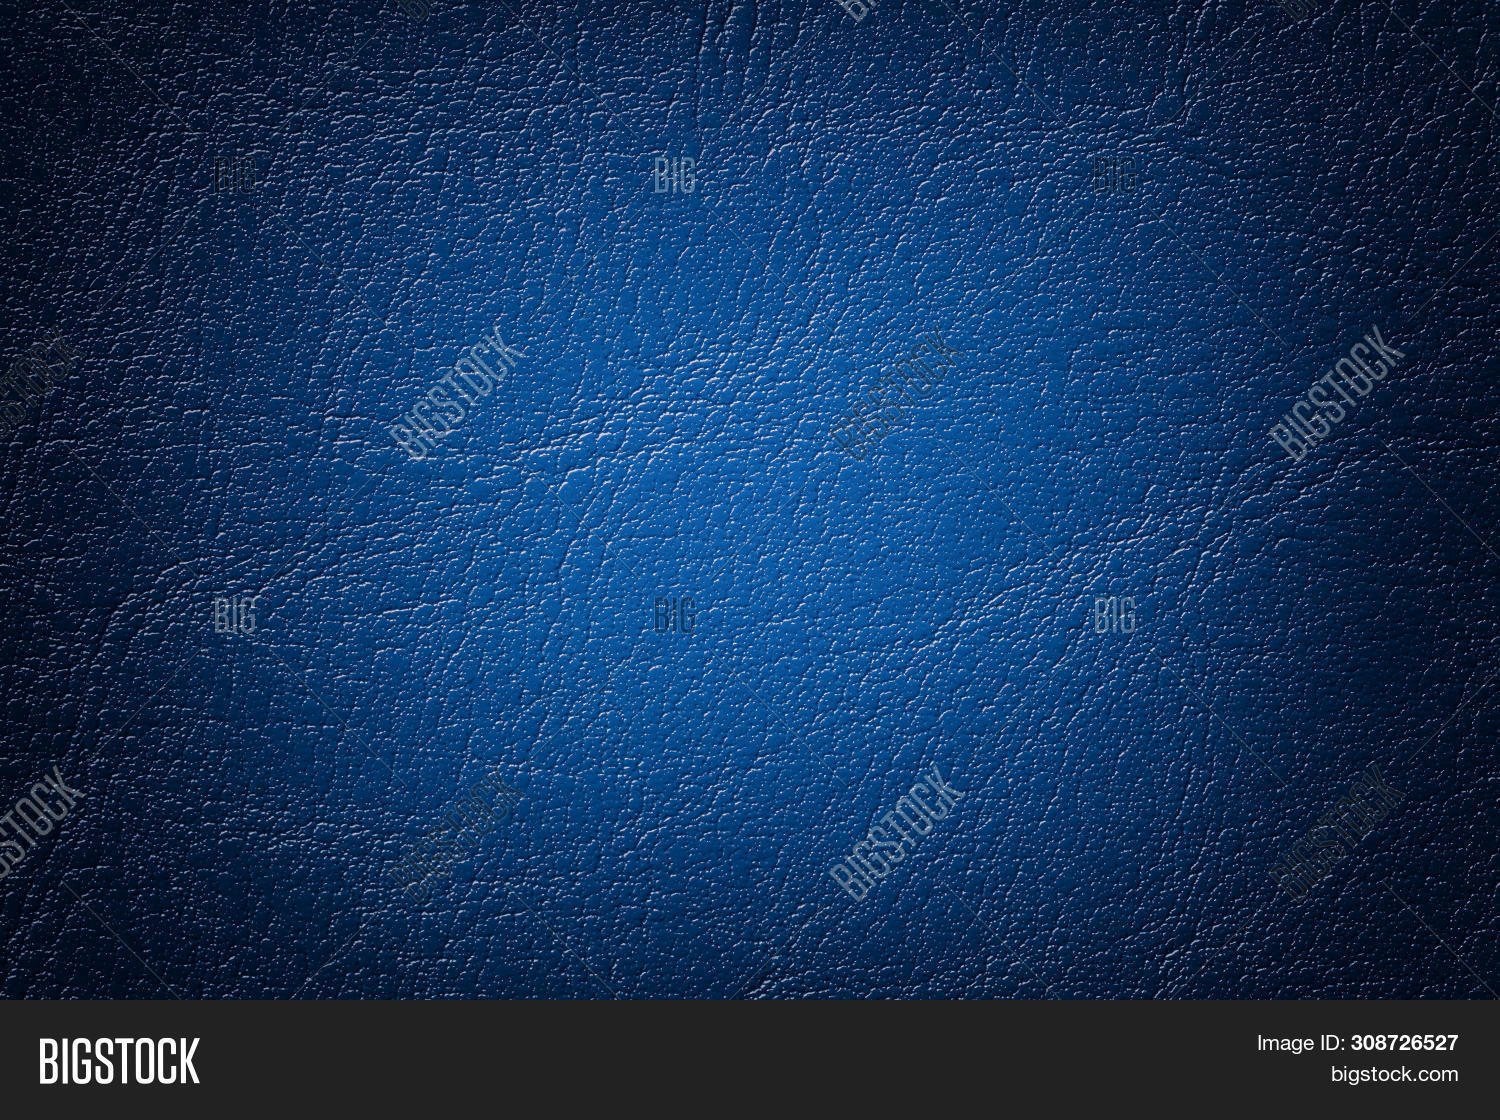 abstract,aged,artificial,backdrop,background,blue,canvas,closeup,cloth,clothing,color,cover,cracked,dark,decorative,design,detail,fabric,factory,fiber,fibrous,frame,gradient,leather,luxury,macro,material,natural,navy,old,pattern,quality,raw,rough,scale,skin,streak,structure,style,surface,textile,texture,upholstery,veiny,vignette,vintage,wallpaper,wrinkle,wrinkled